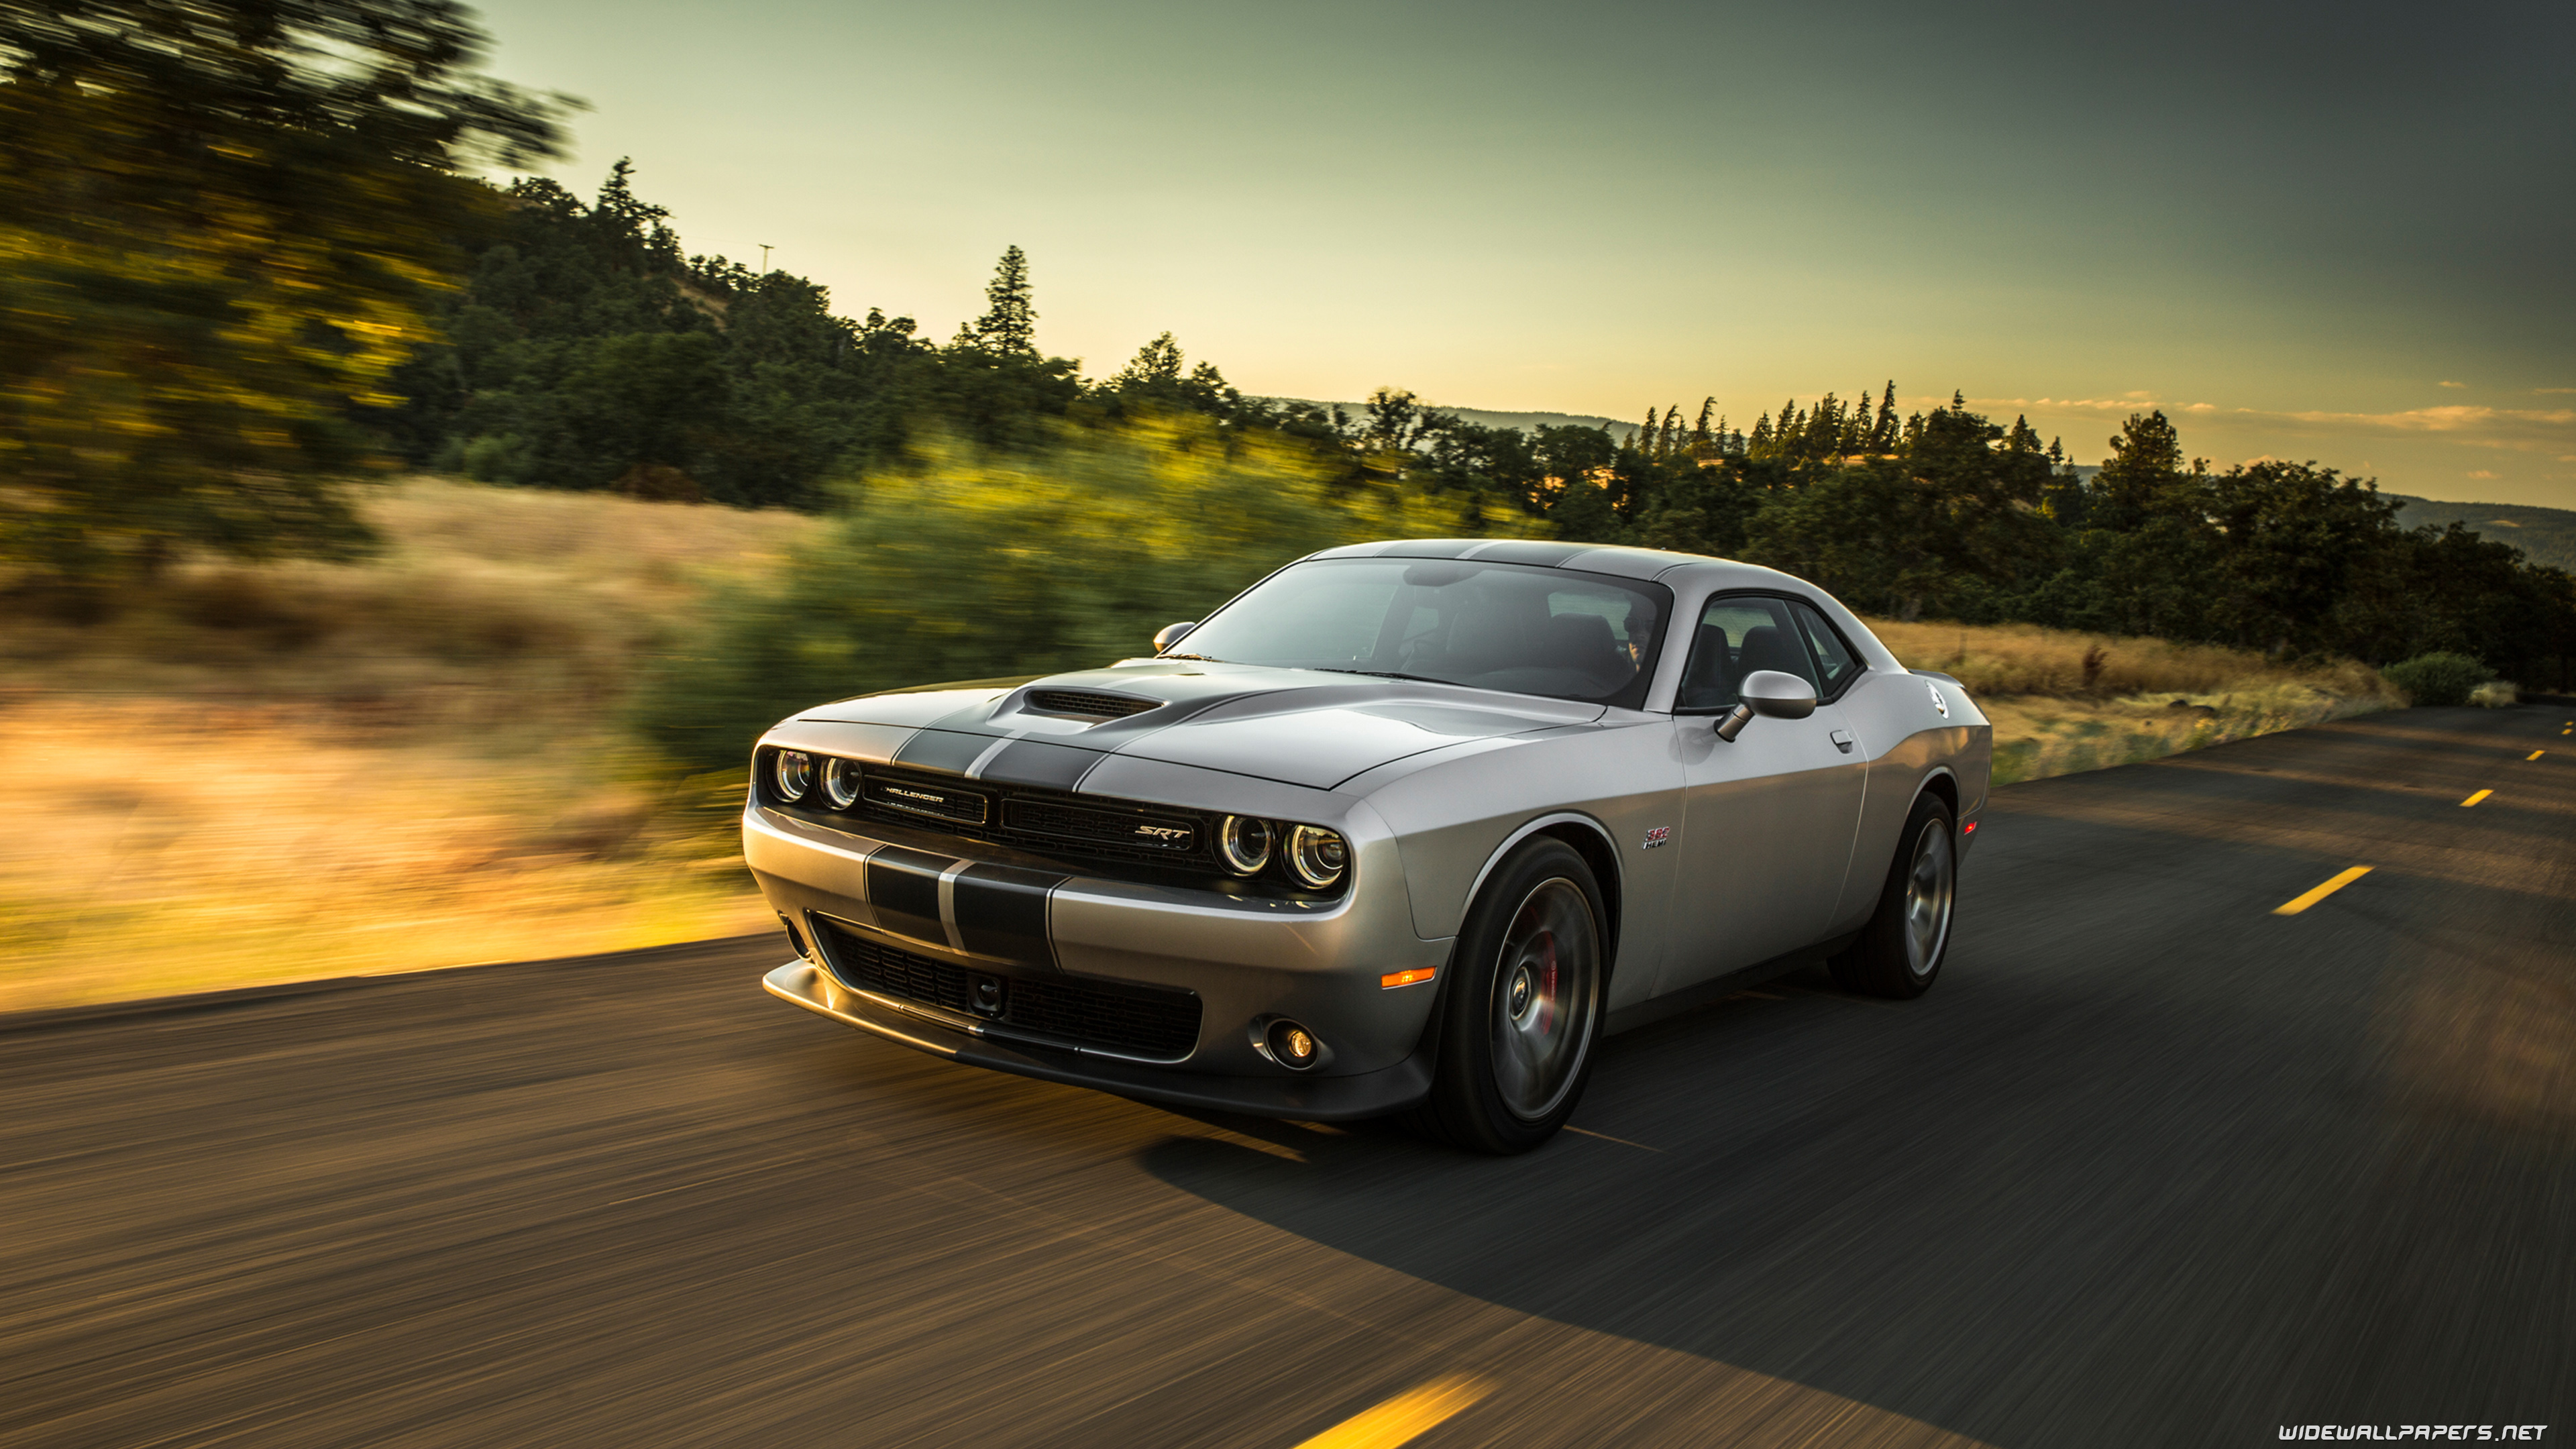 dodge challenger cars desktop wallpapers 4k ultra hd page 3. Black Bedroom Furniture Sets. Home Design Ideas